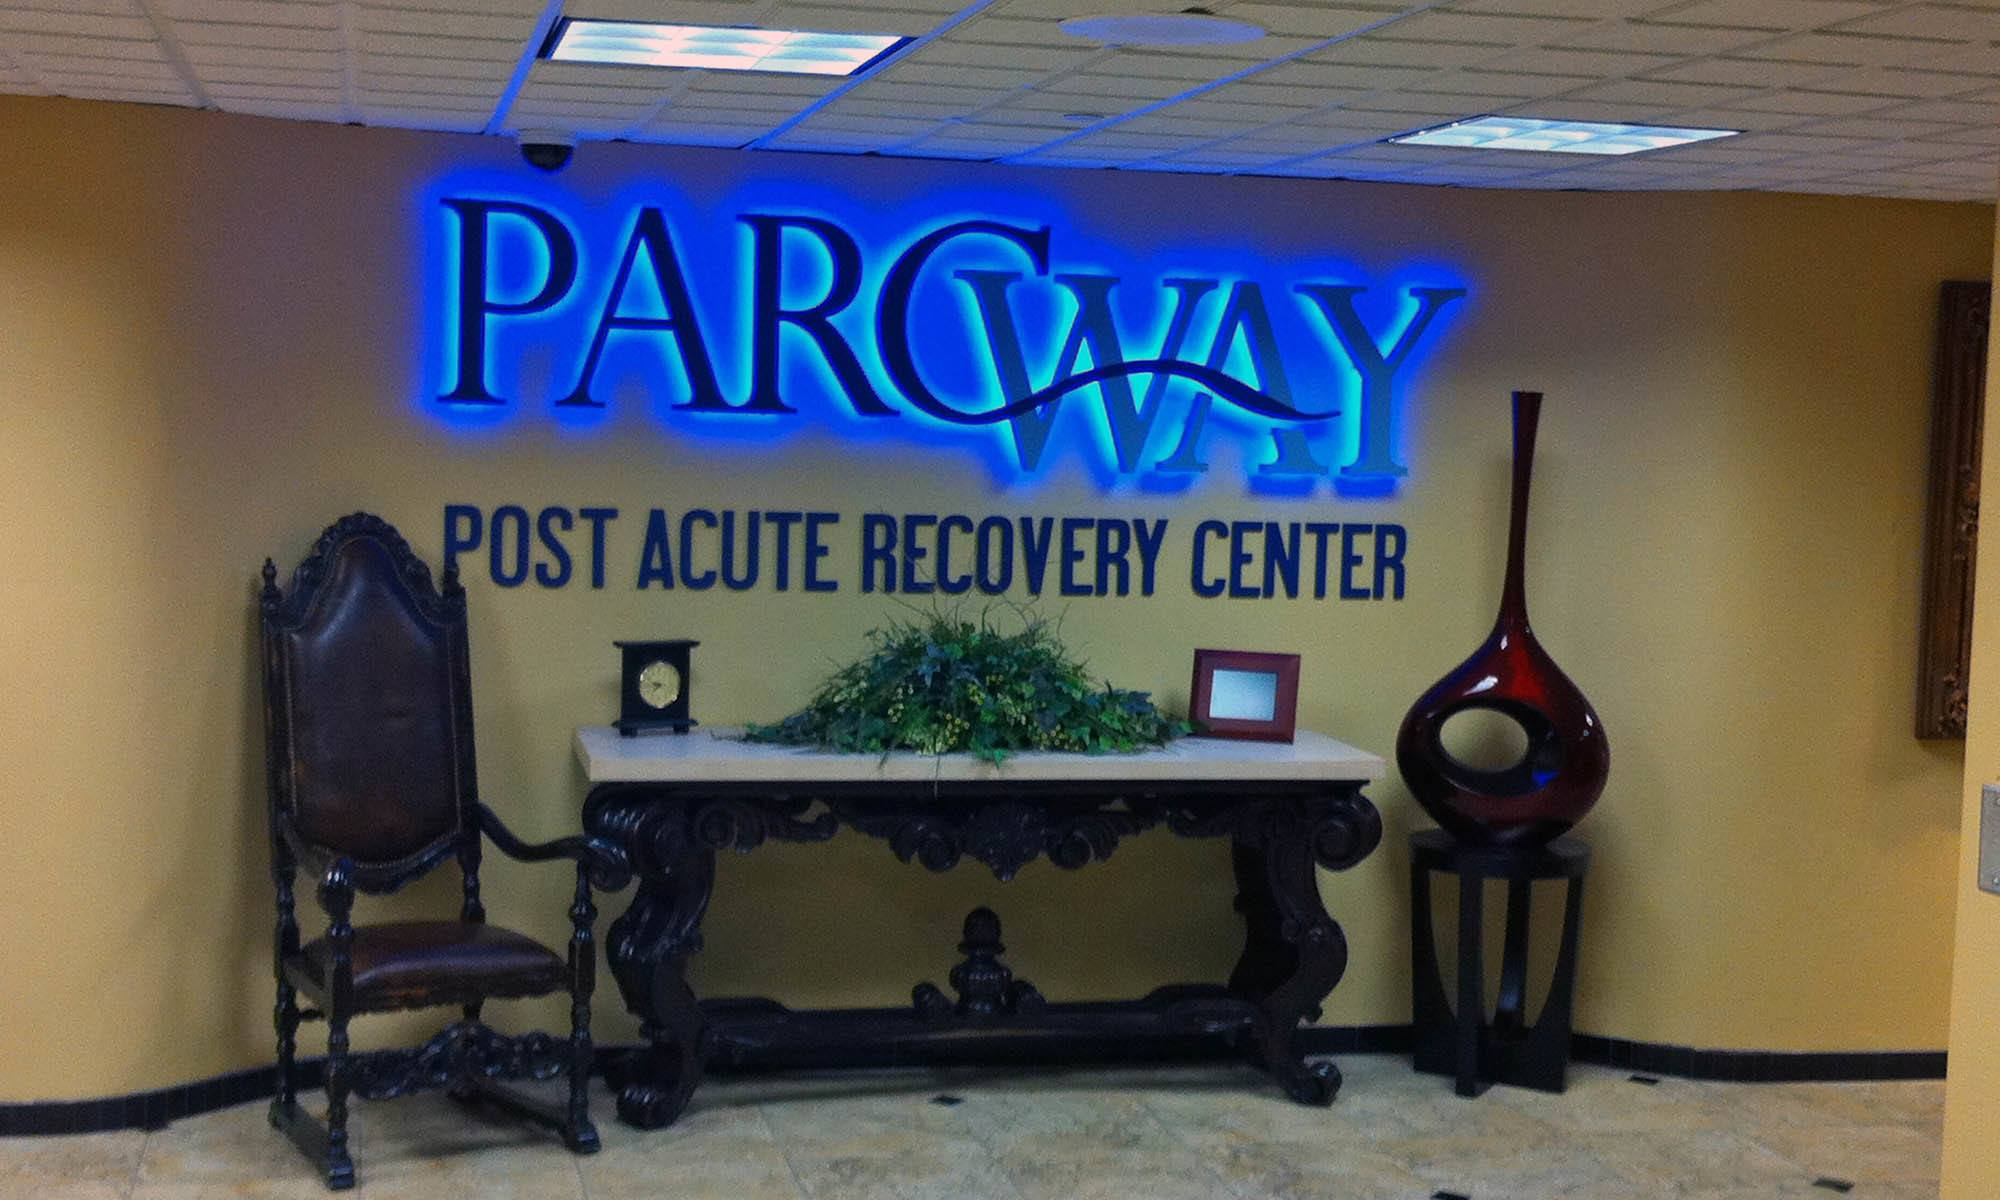 PARCway Post Acute Recovery Center in Oklahoma City, OK